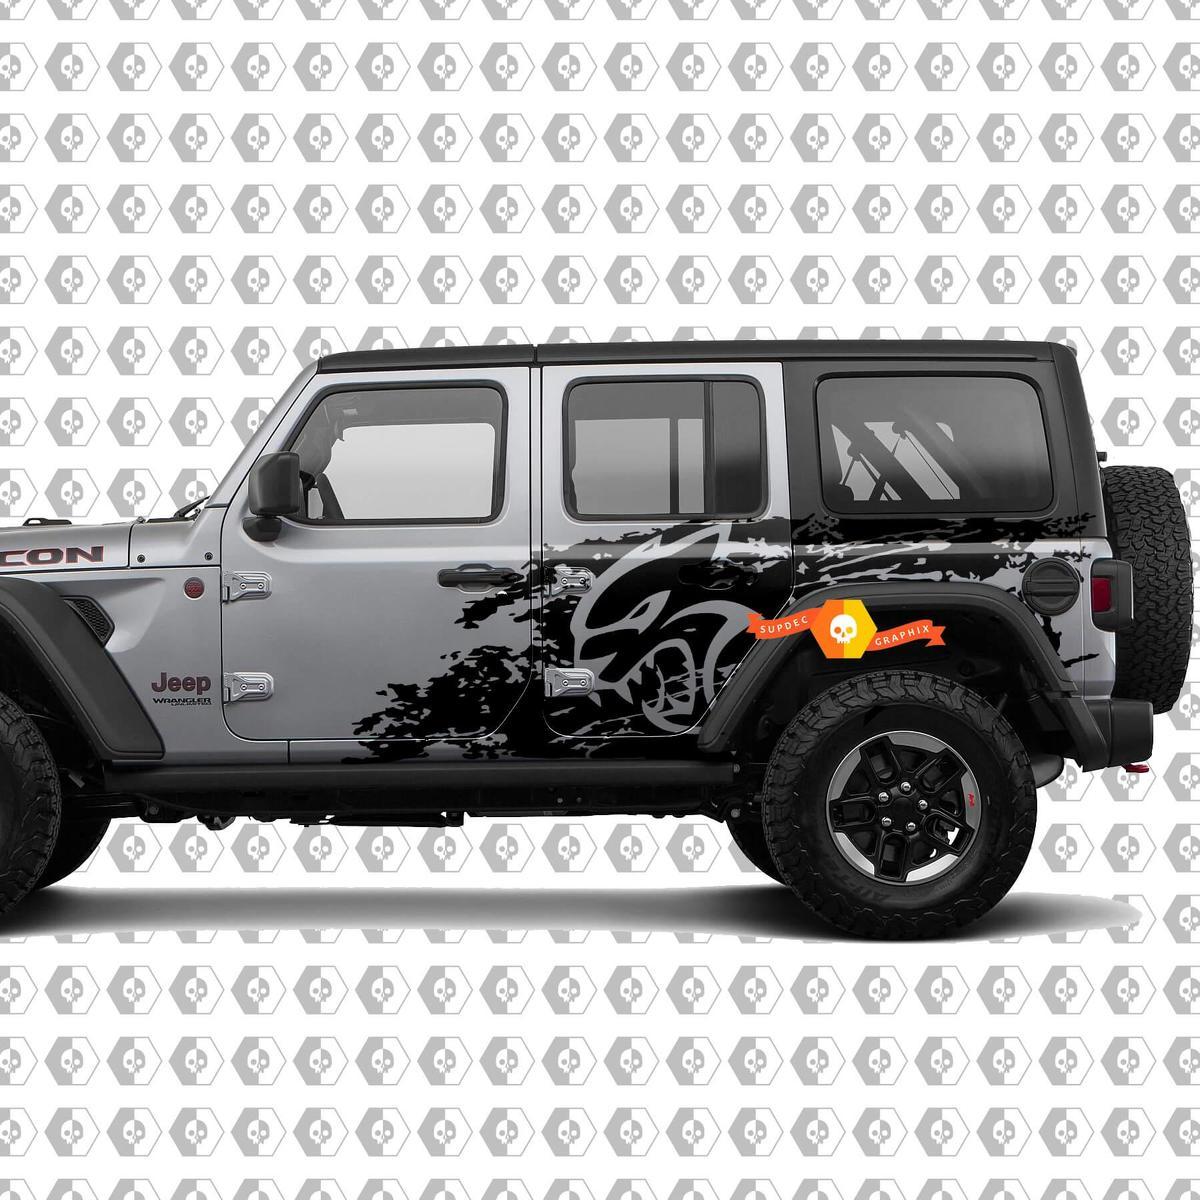 Jeep Wrangler Unlimited Hellcat style Splash Grunge Bed Side Bedside Kit Hell Cat Vinyl Decal Graphic